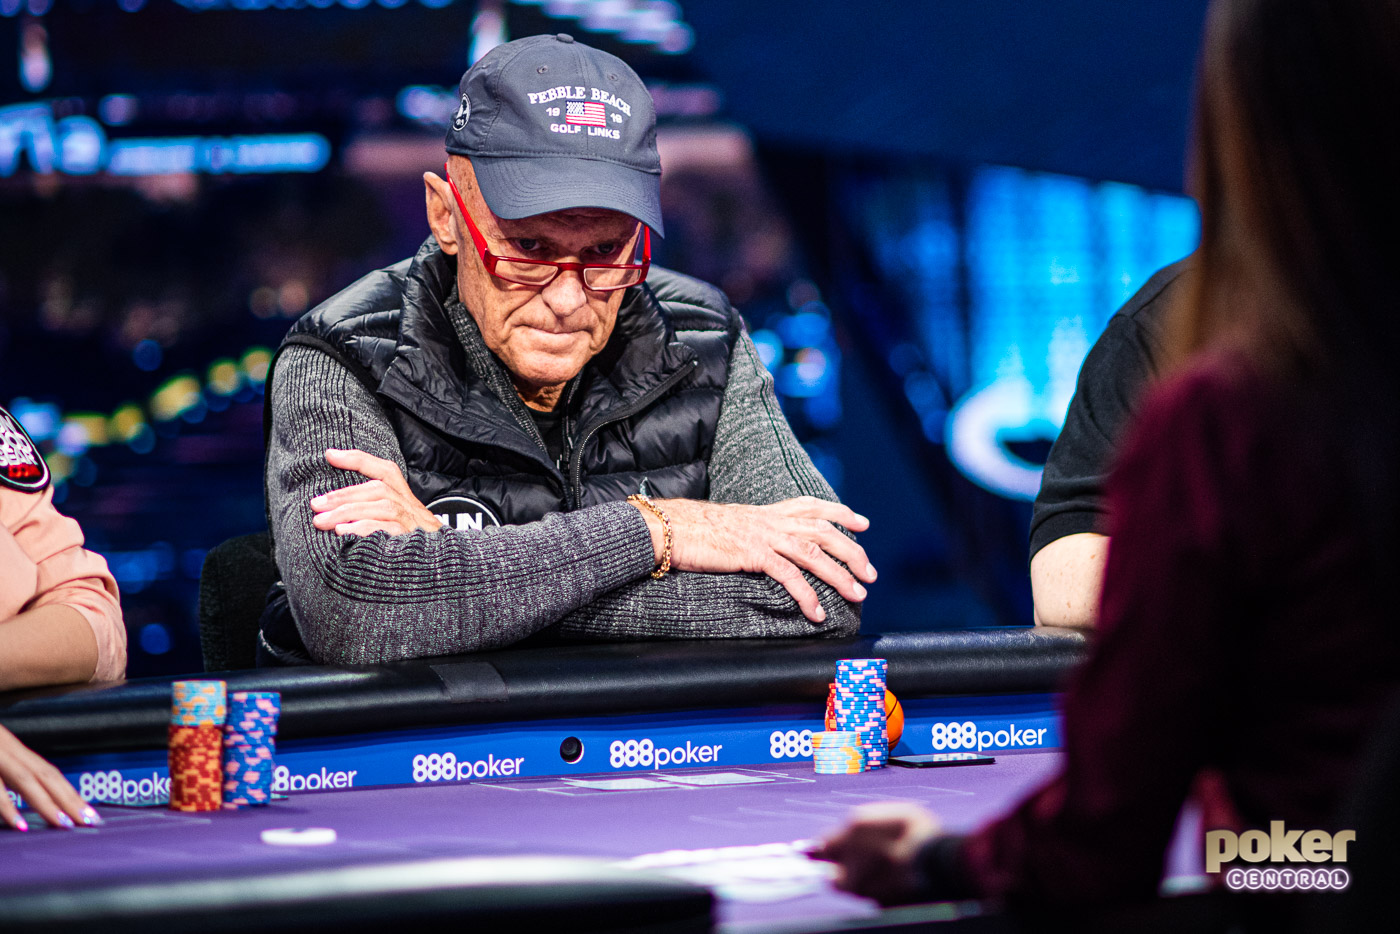 Clyde Lorance focused and locked in on Poker After Dark Showbound week.